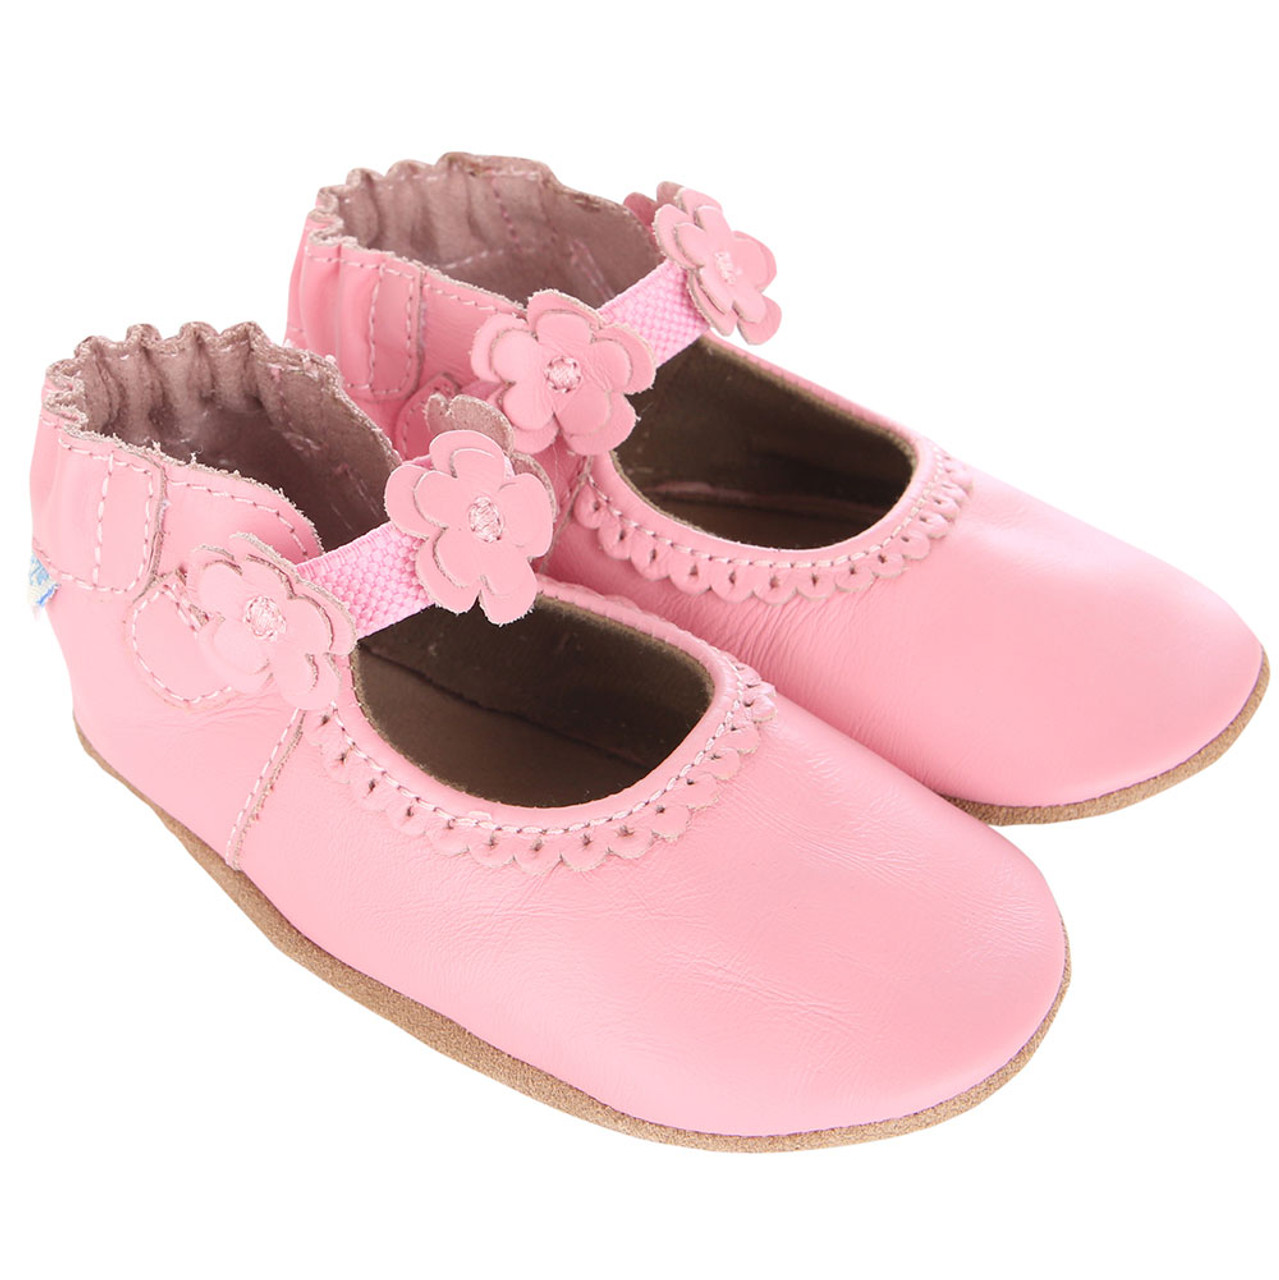 335c7e8ecee02 Robeez Claire Mary Jane Pink Soft Soles